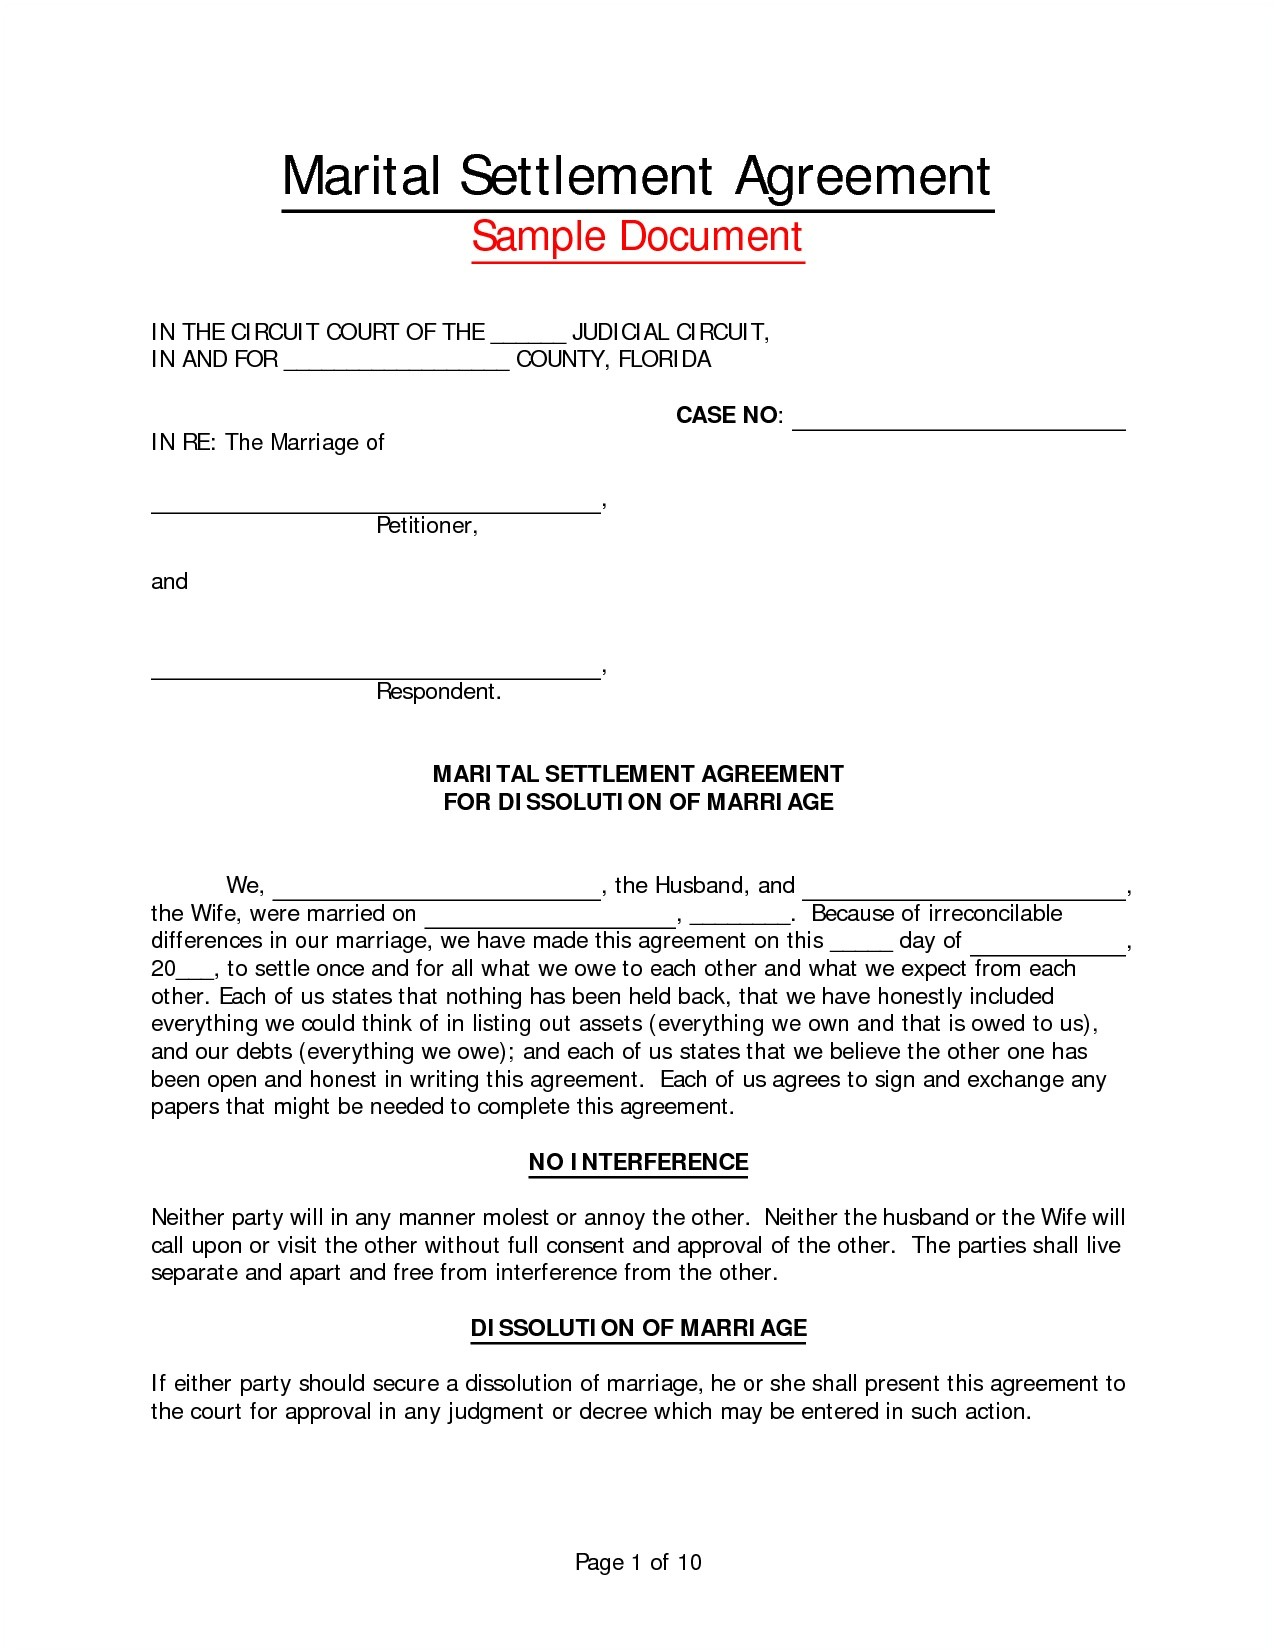 Marriage Separation Agreement Template Images Professional Report Template Word Sample Marital Settlement Agreement Florida